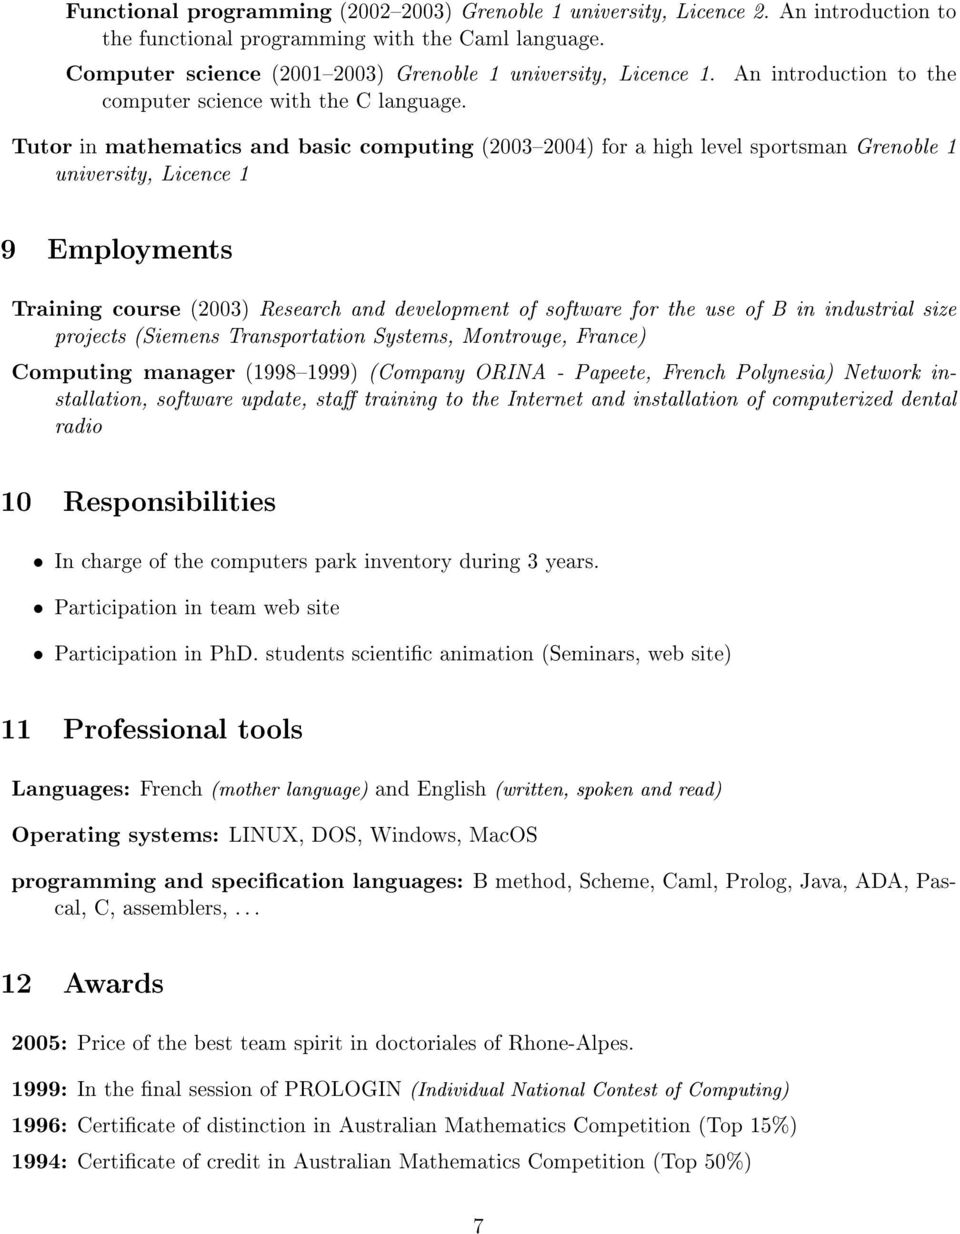 An introduction to the Tutor in mathematics and basic computing (20032004) for a high level sportsman Grenoble 1 university, Licence 1 9 Employments Training course (2003) Research and development of